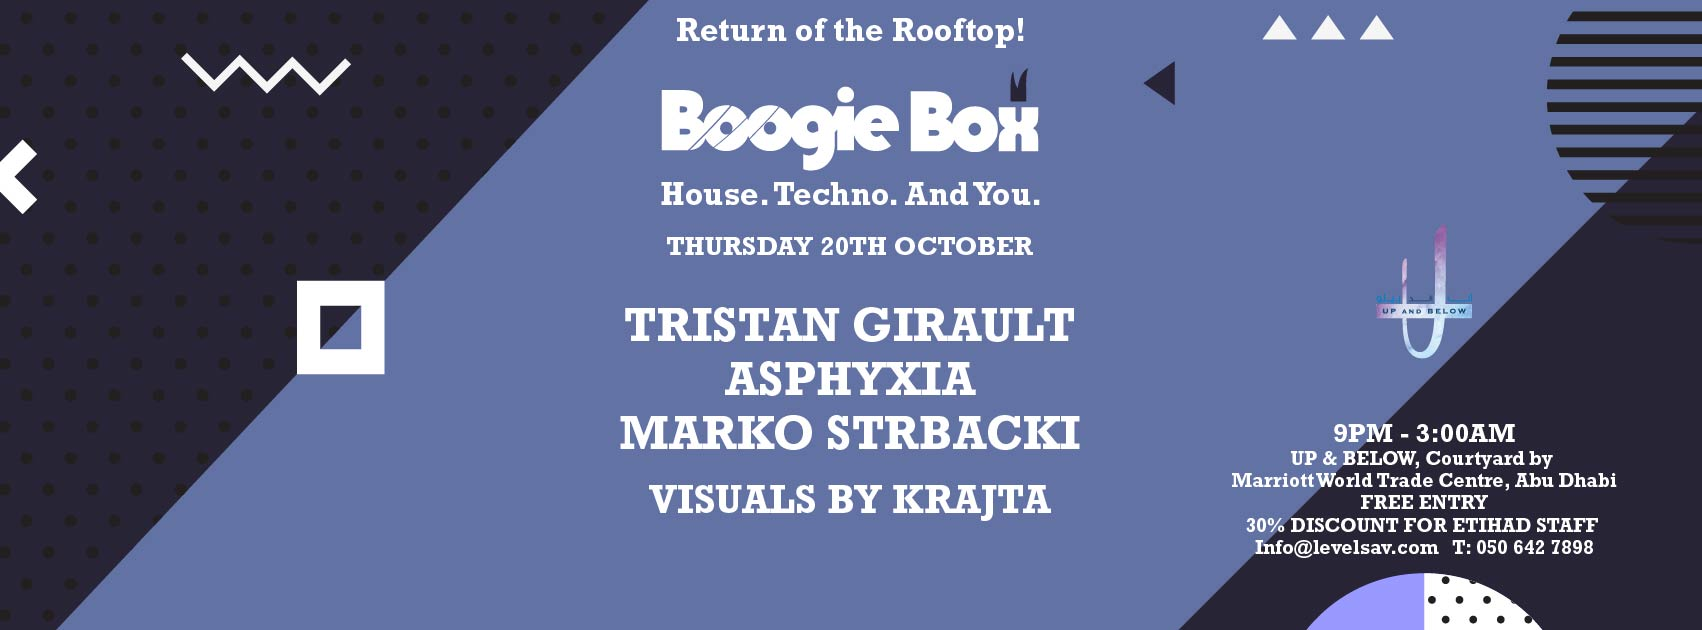 Boogie Box Rooftop Debut @ Up & Below